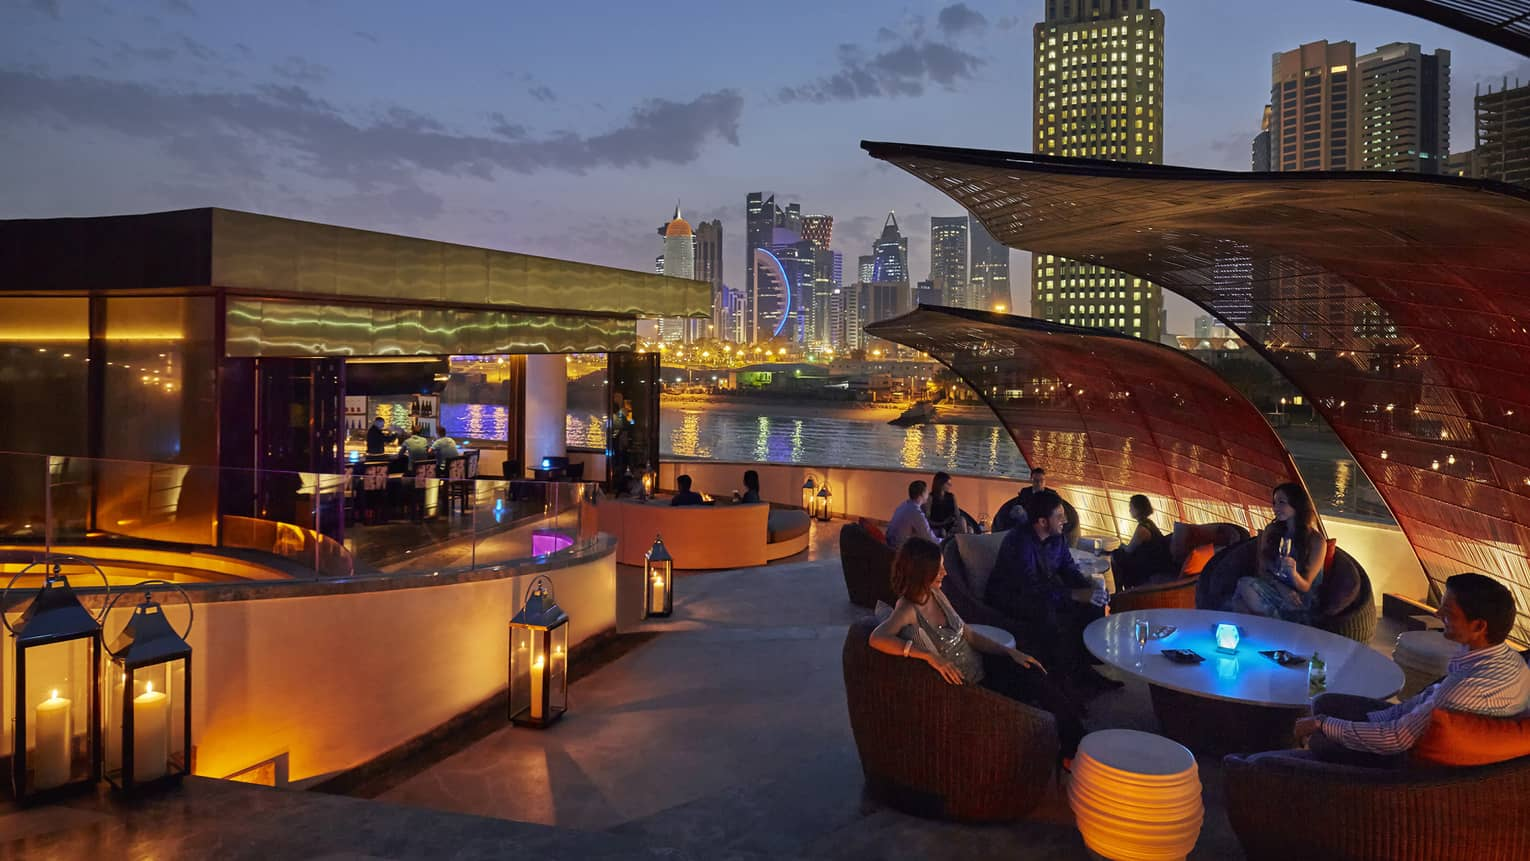 Nobu Doha patio at night with glowing lanterns around bar, table, city skyline in background